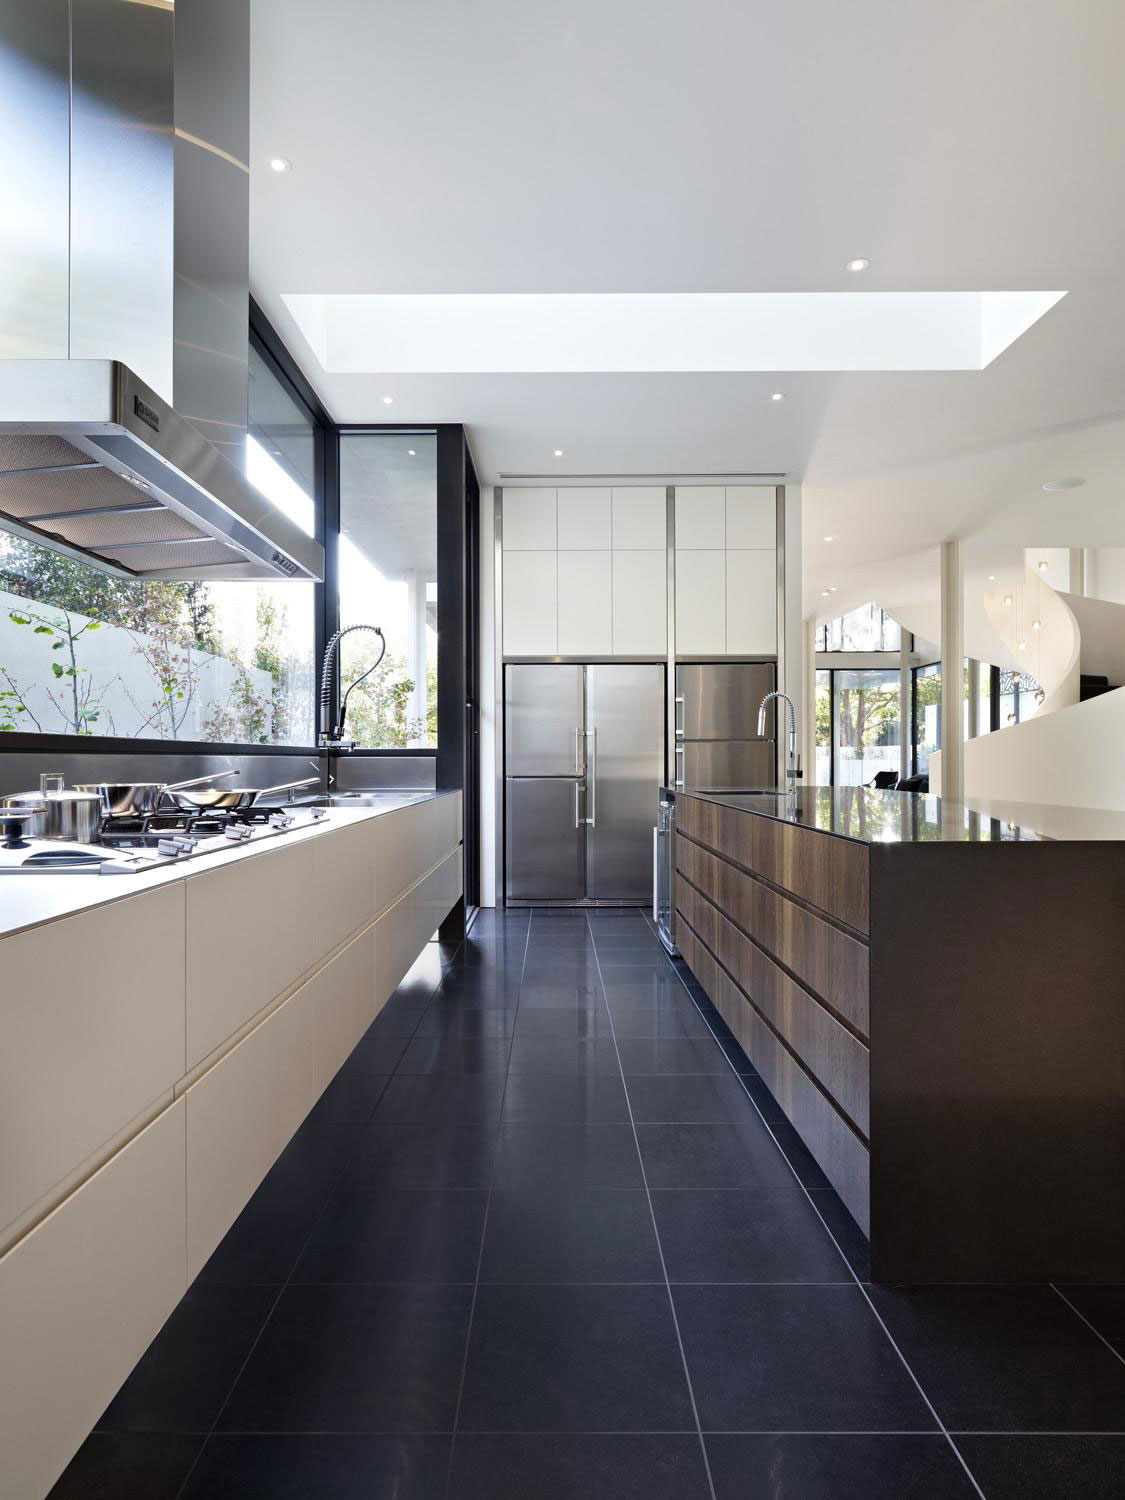 Verdant Avenue Home by Robert Mills Architects (6)